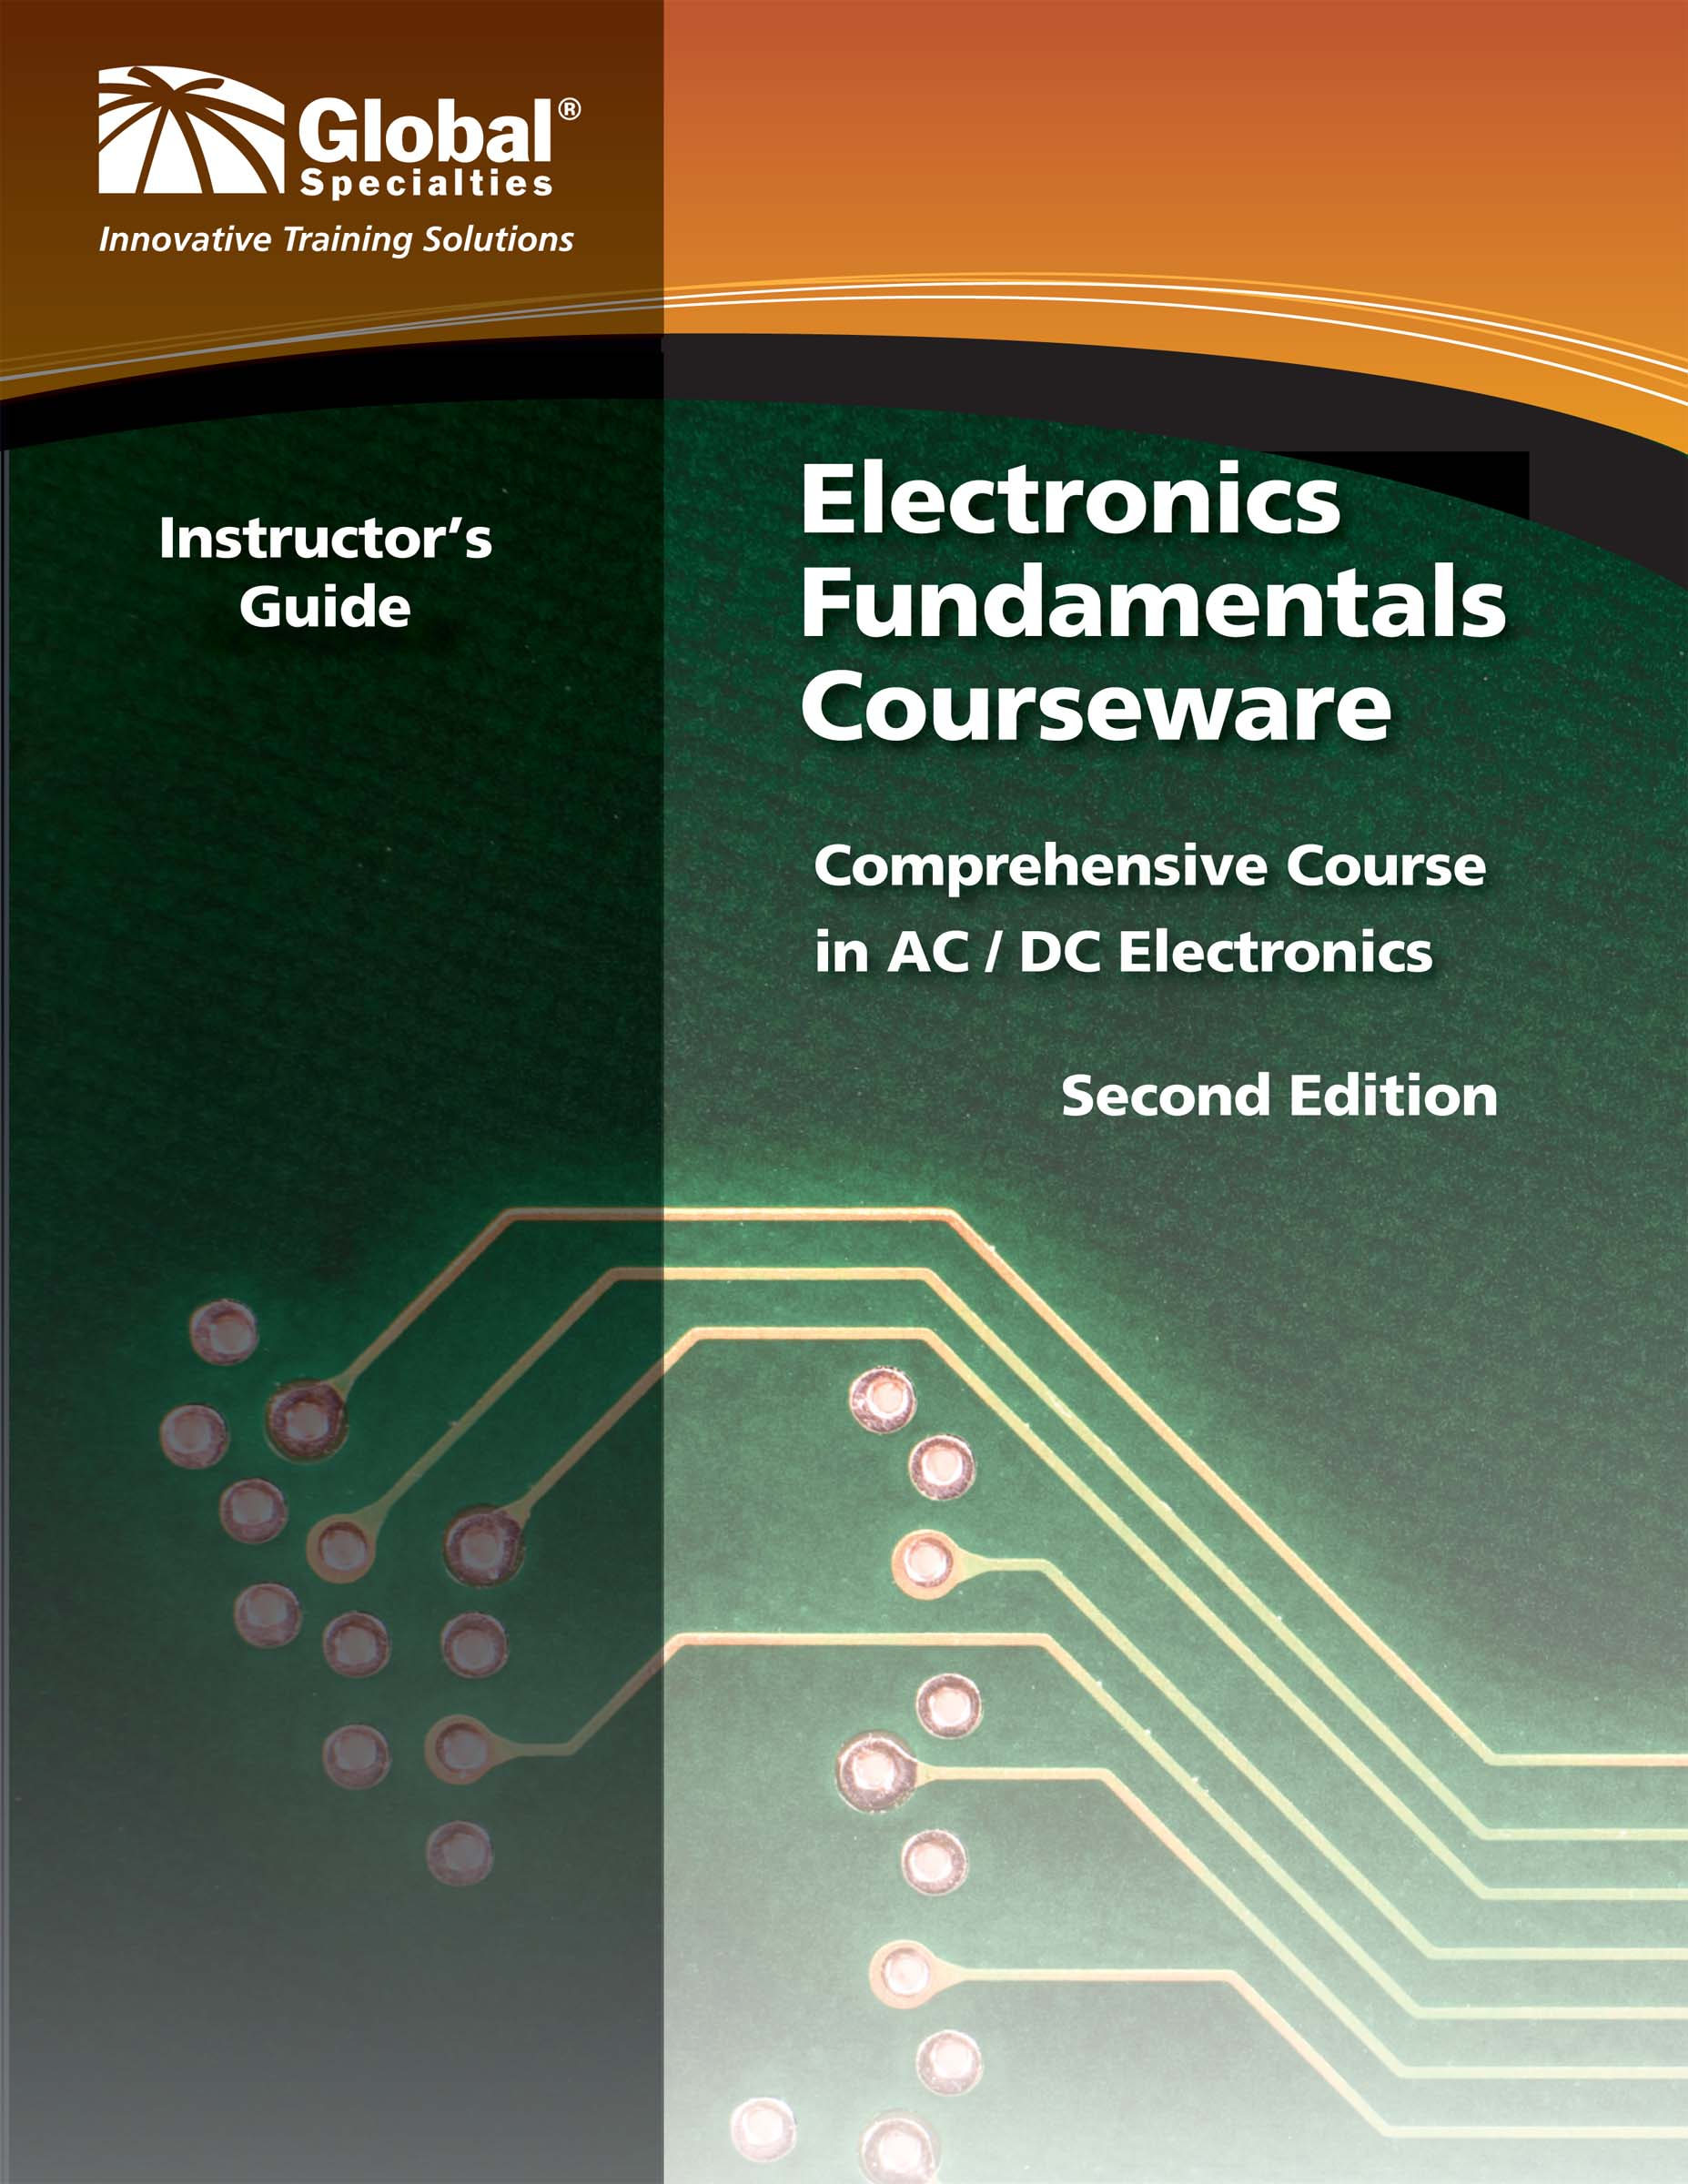 Global Specialties GSC-2302 Electronics Fundamentals Instructor's Guide Photo